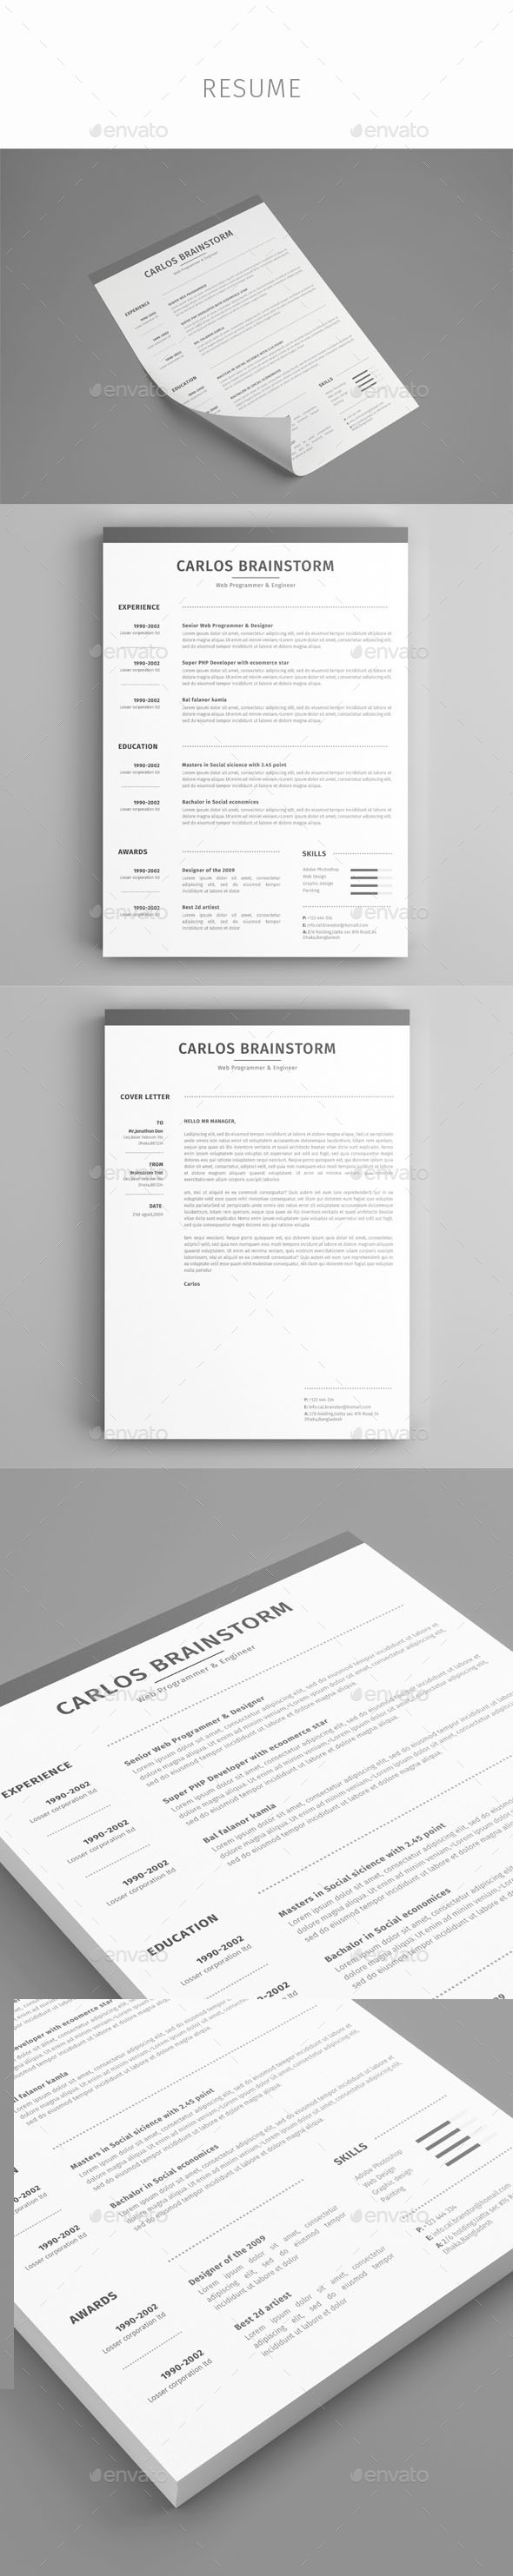 Resume Resume Template DownloadPsd Resume